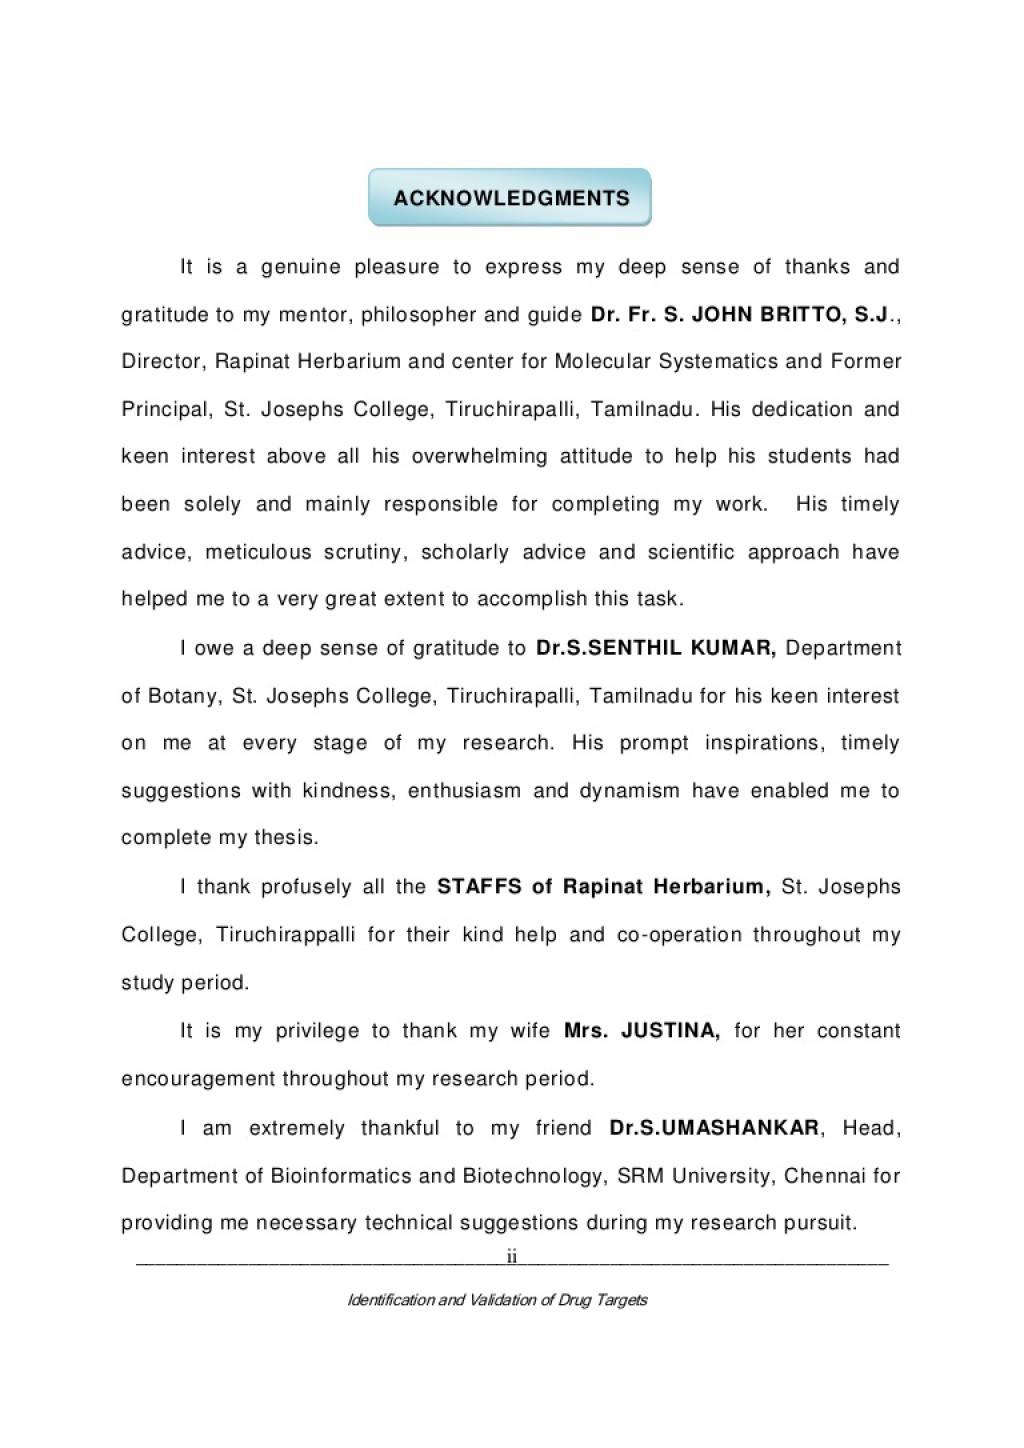 001 Acknowledgements Phpapp02 Thumbnail Research Paper Acknowledgement For Unbelievable Students Large